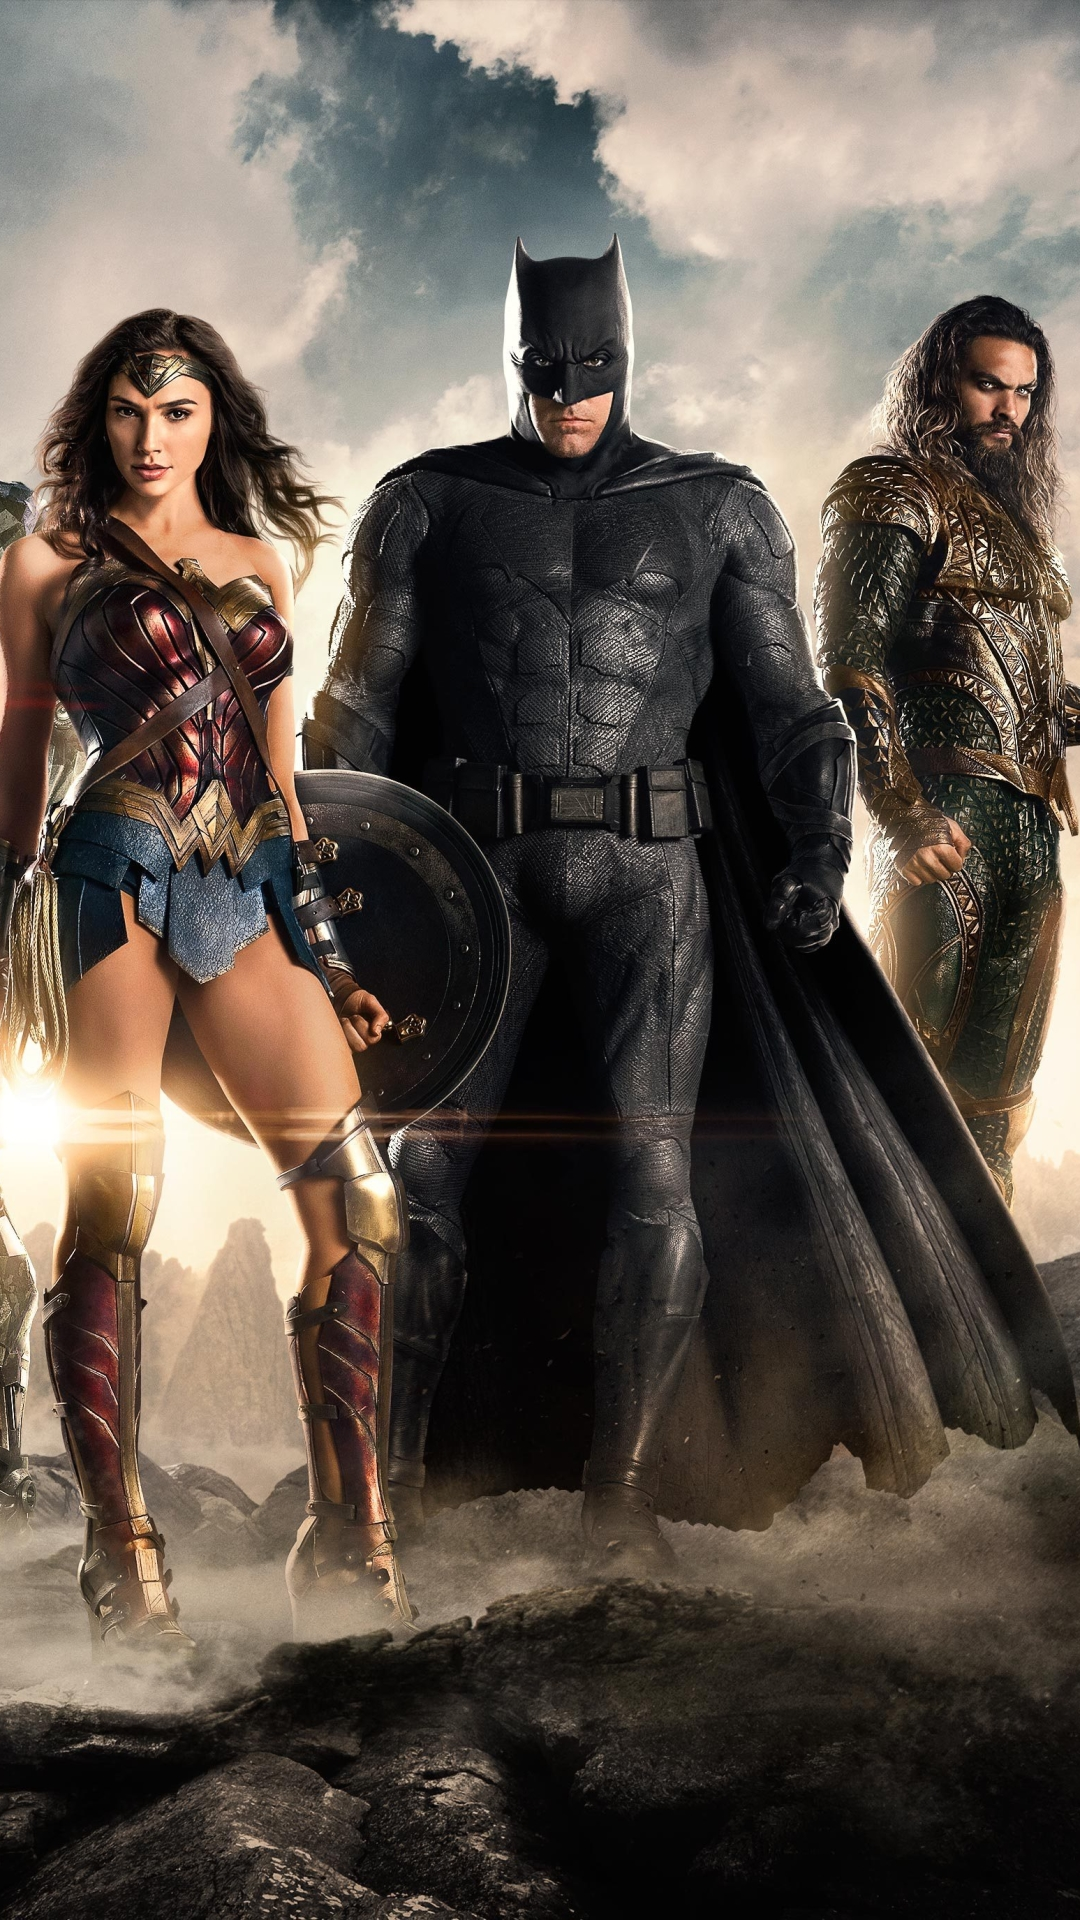 Moviejustice League 2017 1080x1920 Wallpaper Id 638377